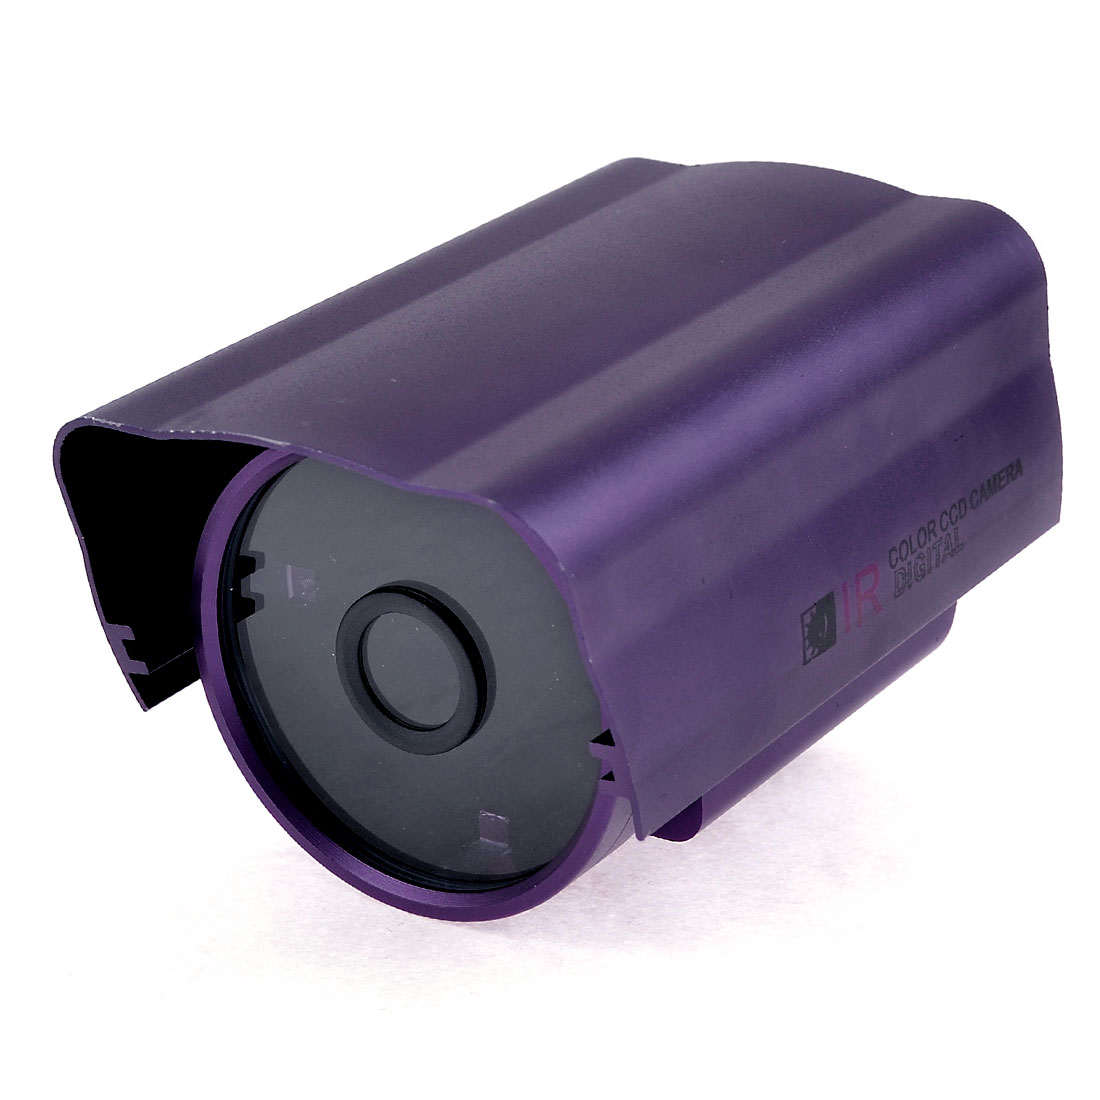 "4.7"" Aluminium Alloy Protective Security CCTV CCD Camera Housing Case Purple"